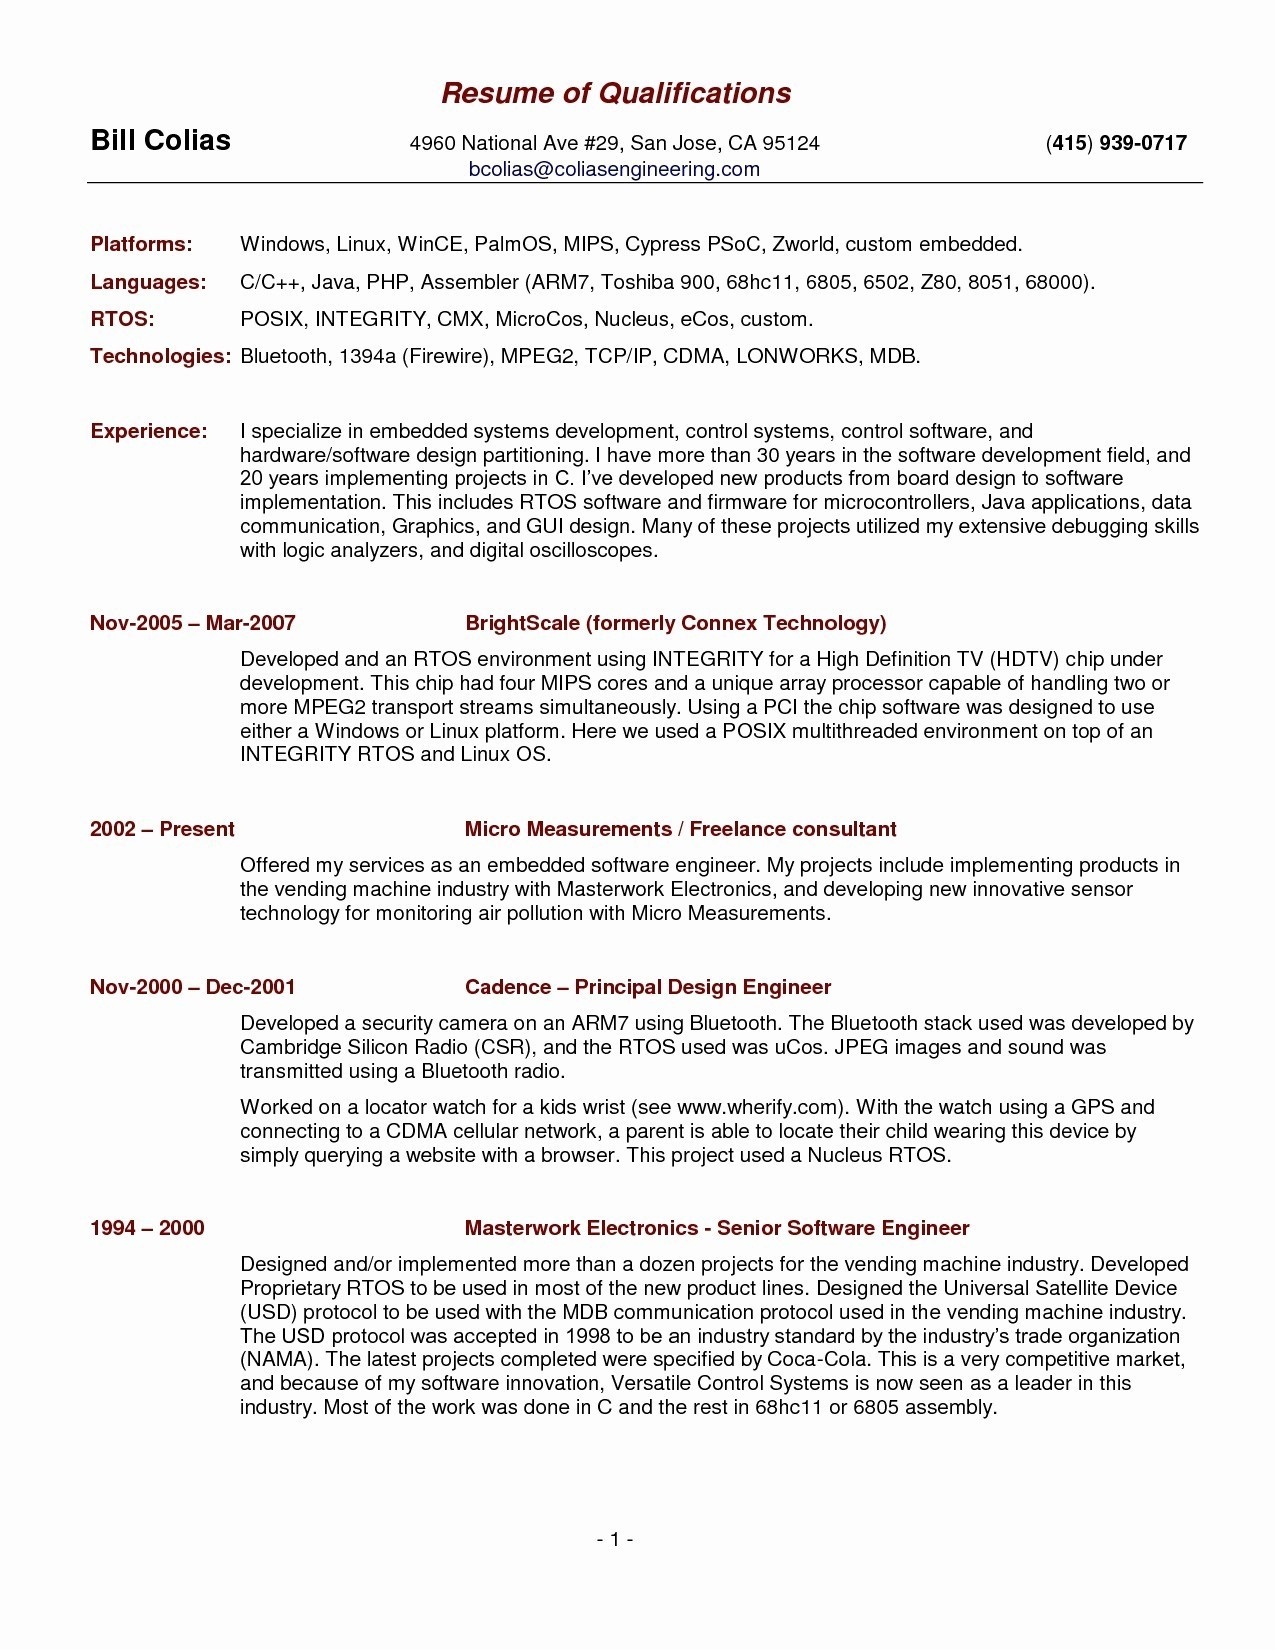 Resume Opening Statement Examples - Speech Language Pathologist Resume Elegant Unique Examples Resumes